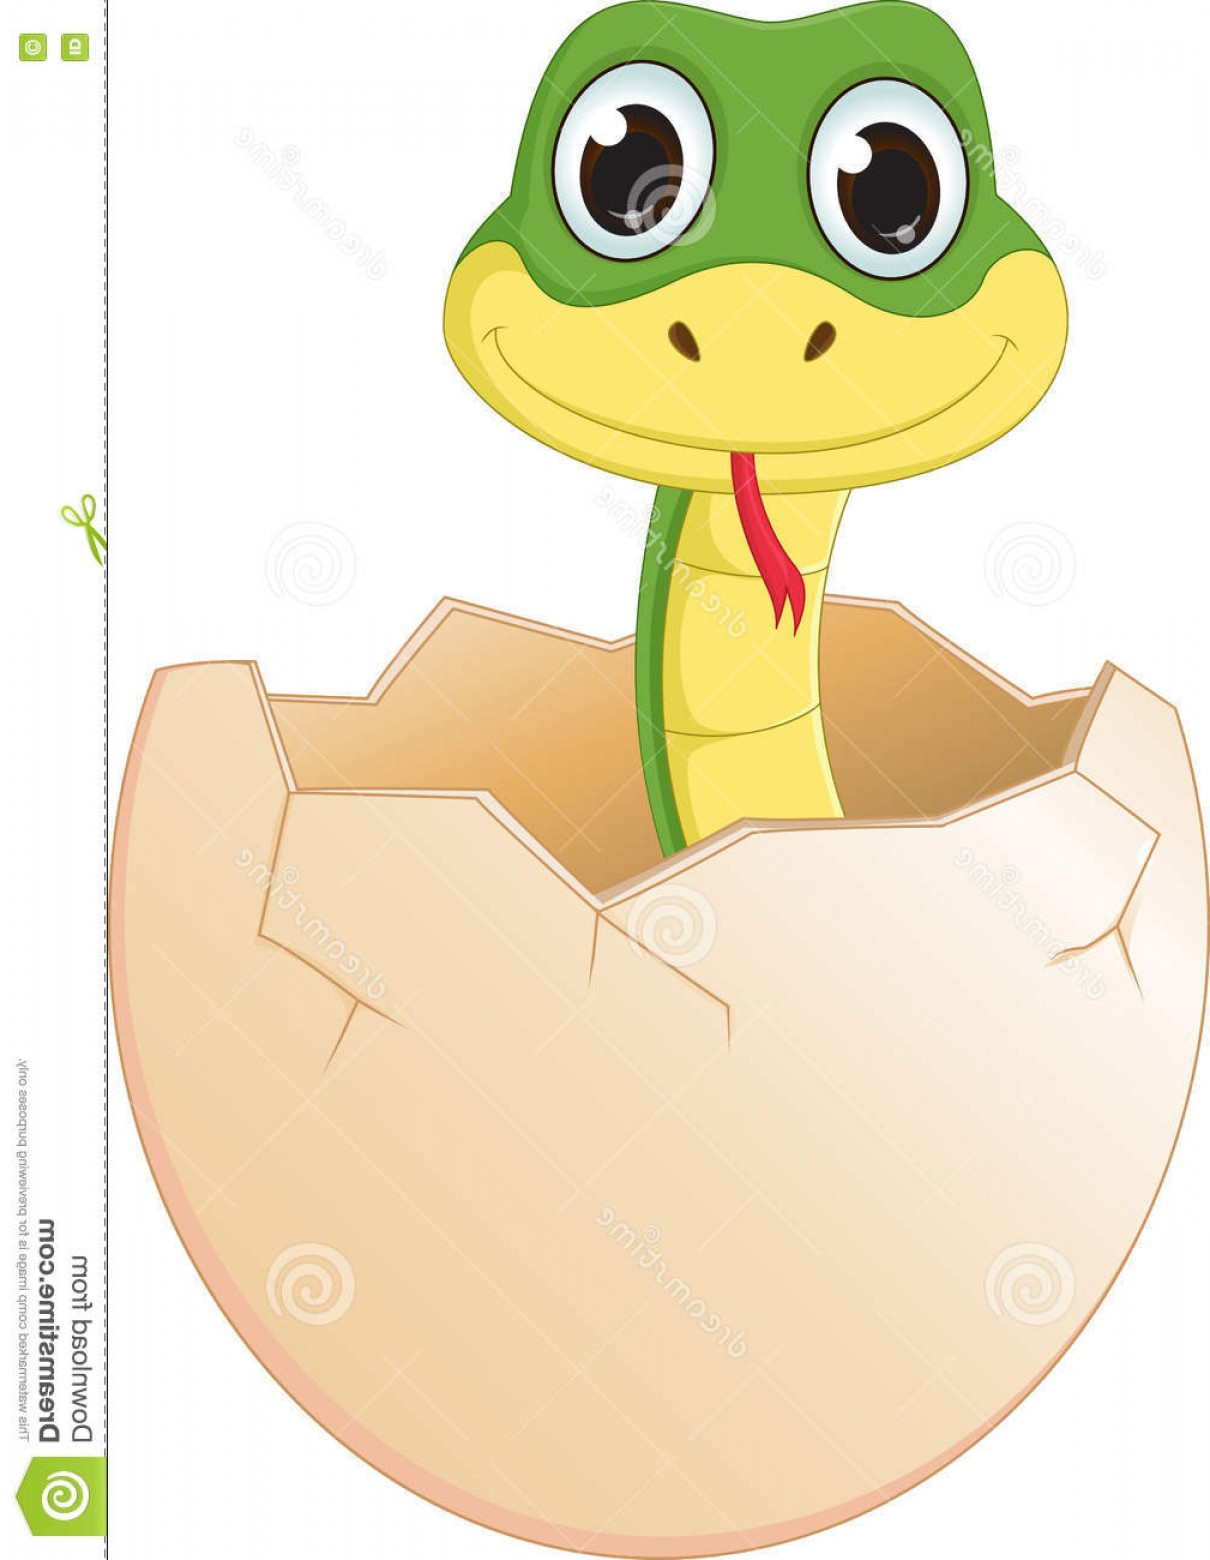 Cute But Deadly Vector: Stock Illustration Cute Cartoon Snake Hatching Vector Illustration Isolated White Image